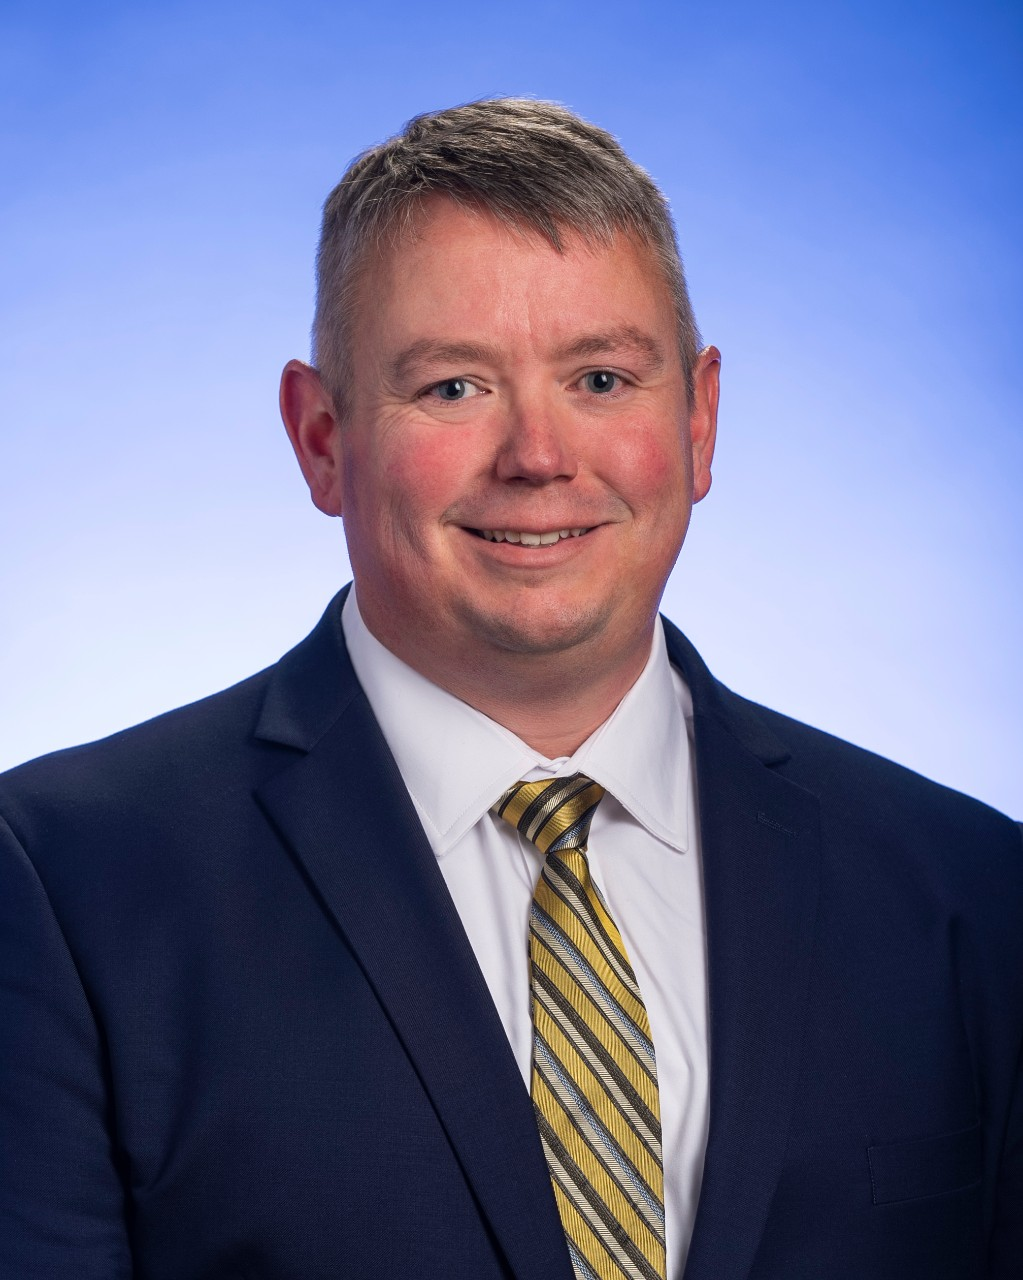 Portrait of John Gibson, Regional Director of Veterans Services in West Tennessee